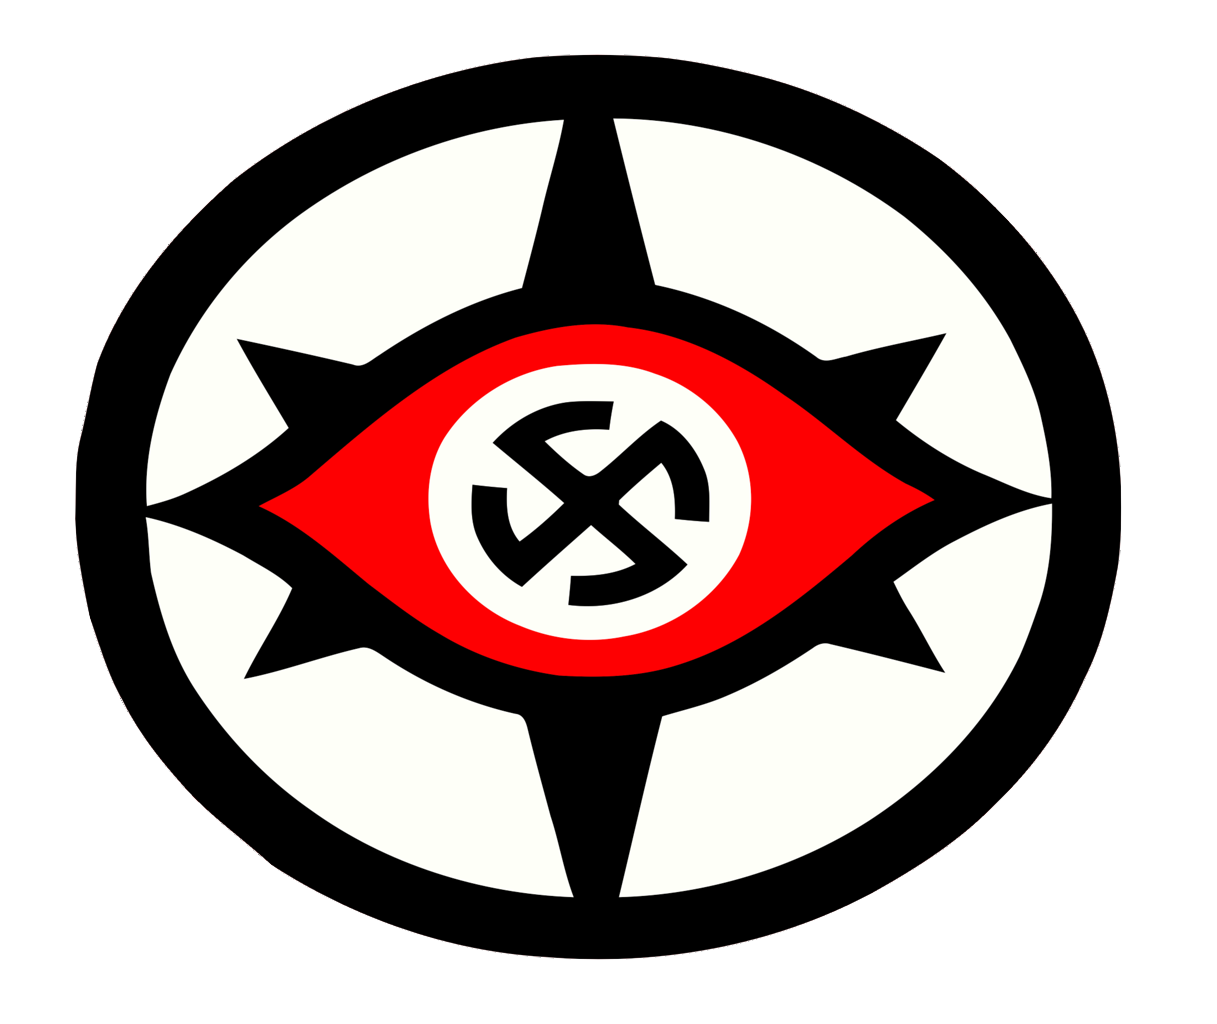 Ss paranormal division wolfenstein wiki fandom powered by wikia the ss paranormal division german ss paranormal abteilung is a ss special division in the latest wolfenstein games return to castle wolfenstein biocorpaavc Gallery